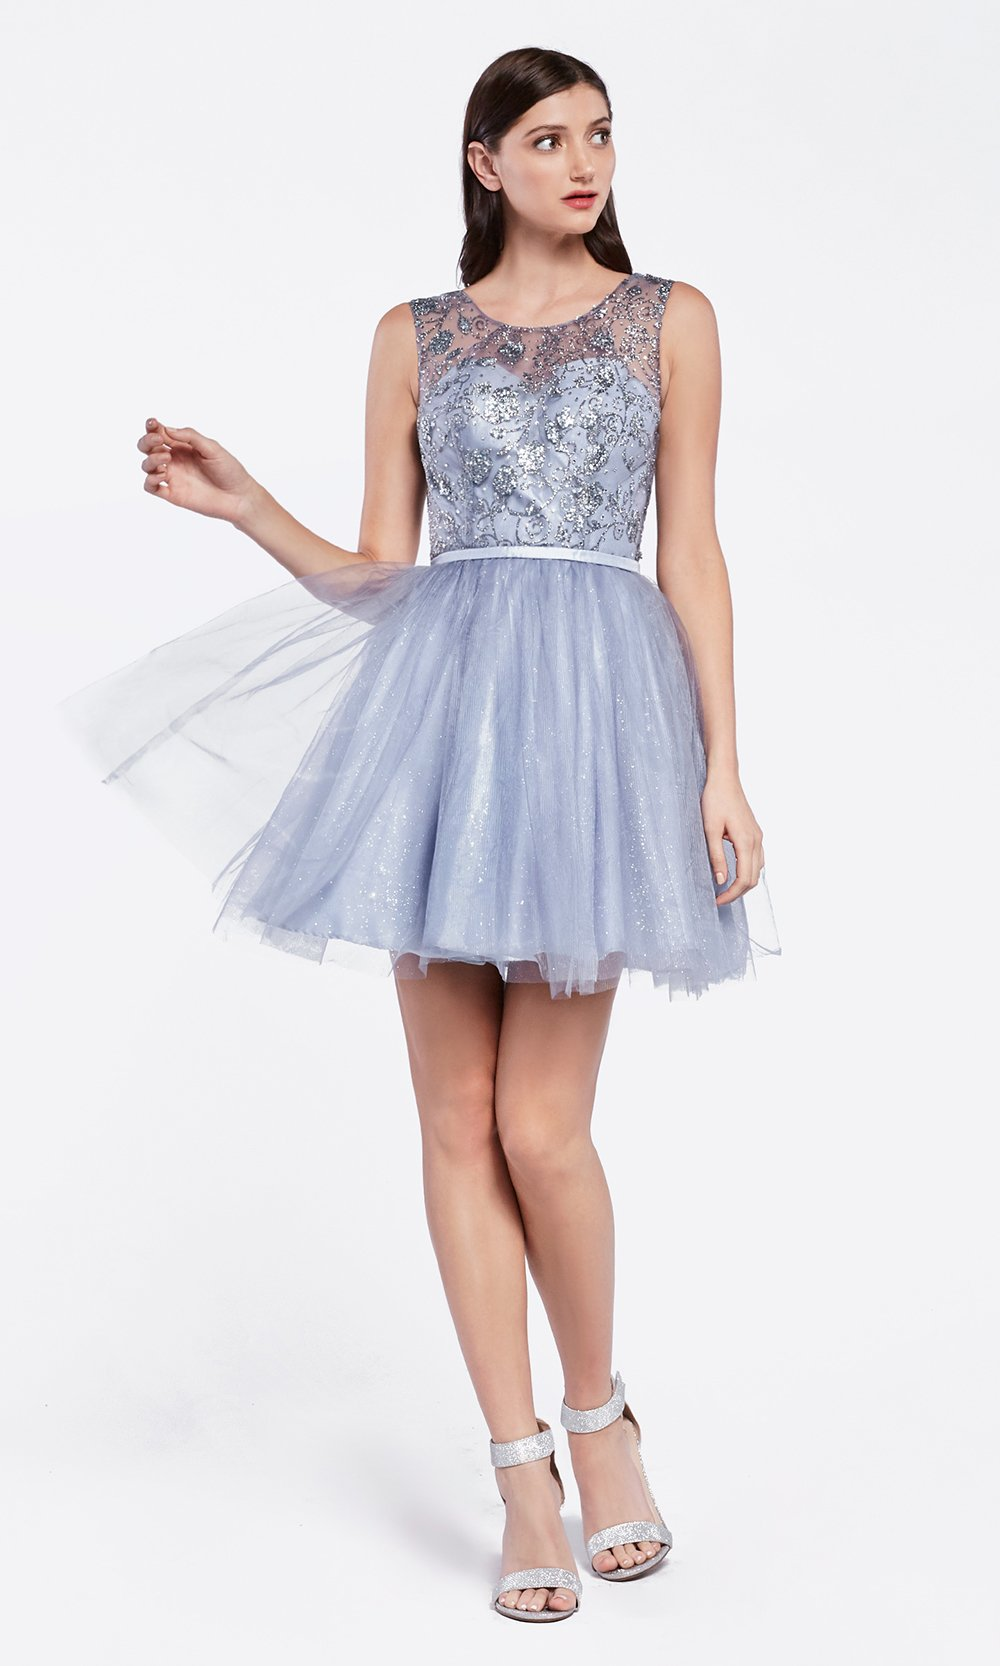 Cinderella Divine CD20 short dusty blue flowy high neck sequin beaded party dress w/ wide straps. Blue grey shiny dress is perfect for prom, graduation, grade 8 grad, confirmation dress, bat mitzvah dress, quinceanera damas. Plus sizes avail